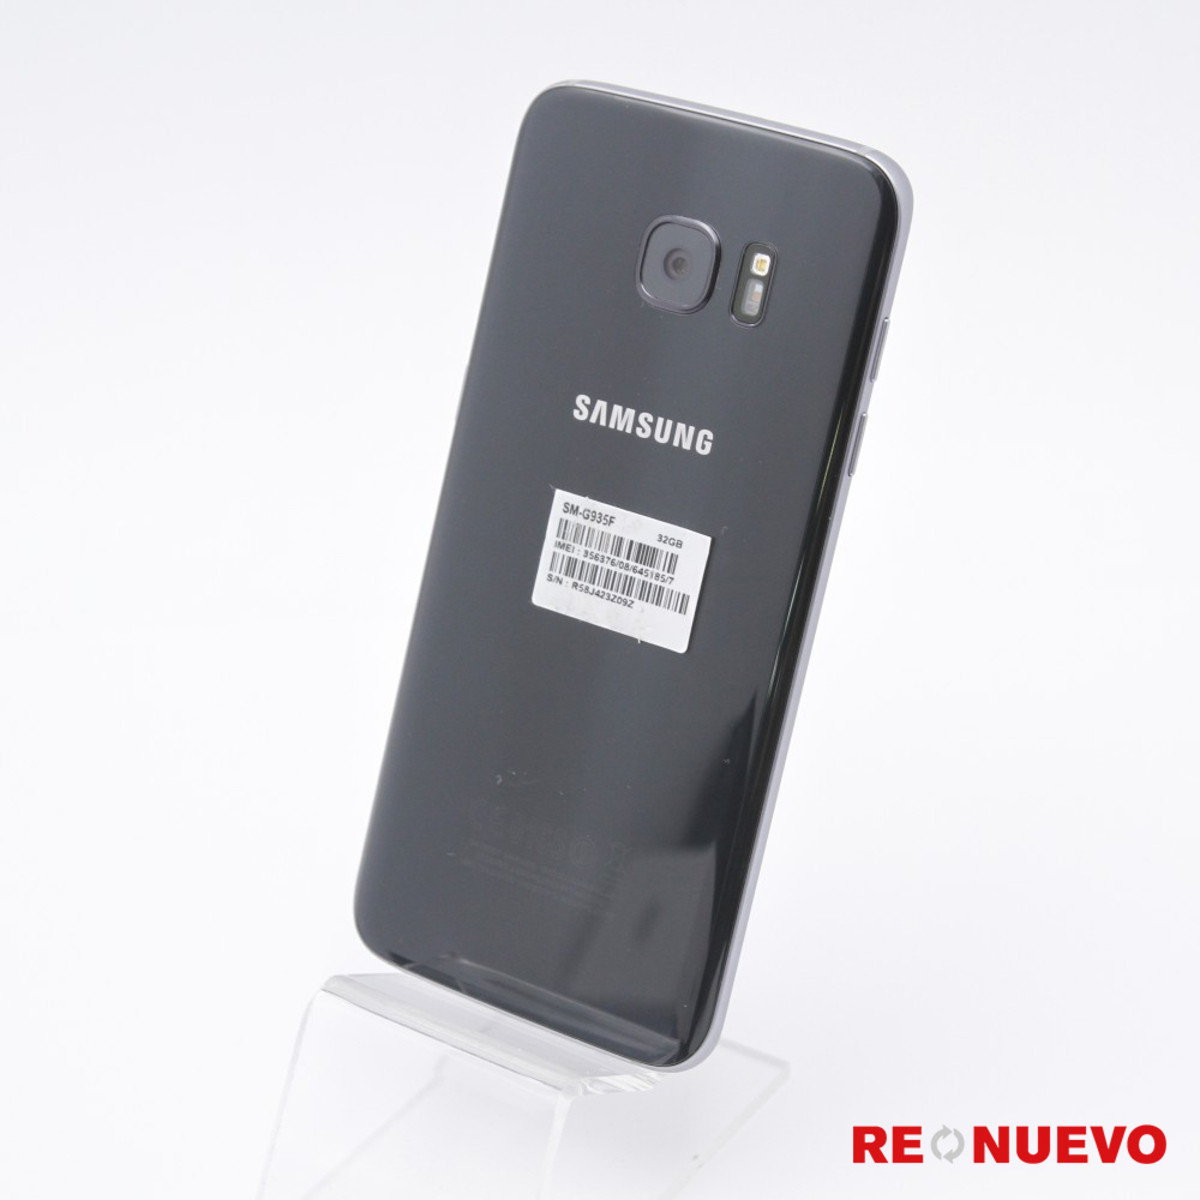 Comprar Galaxy S7 Edge Brillante Prar Samsung Galaxy S7 Edge De 32gb Black Yx De Of Comprar Galaxy S7 Edge Perfecto Samsung Galaxy S7 Edge Celulares Costa Rica